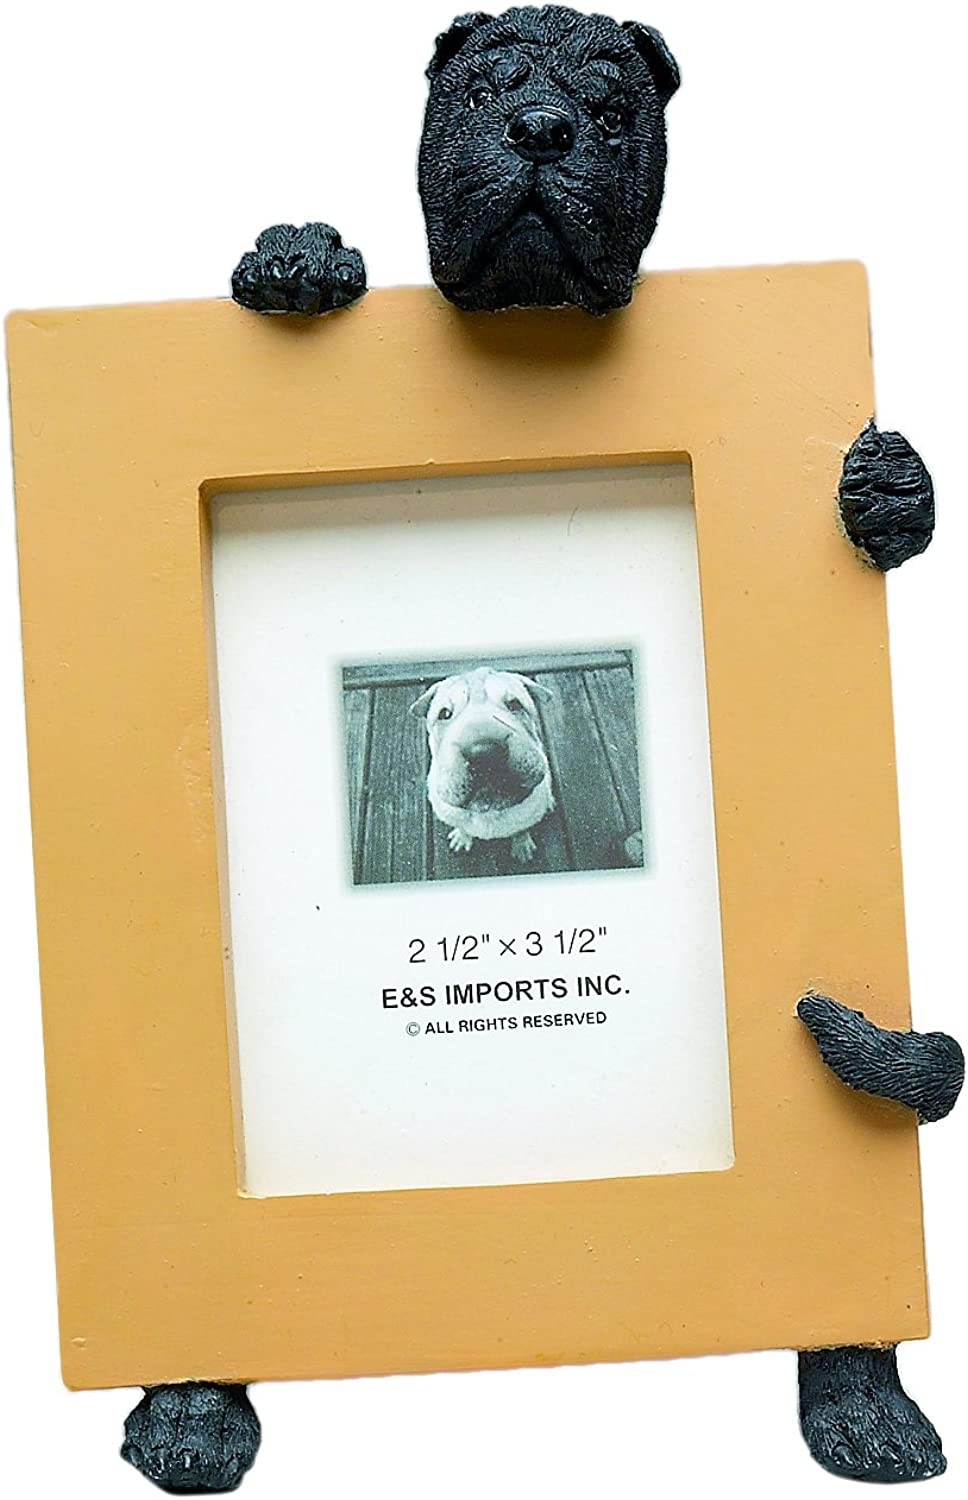 Black Sharpei Picture Frame Holds Your Favorite 2.5 by 3.5 Inch Photo, Hand Painted Realistic Looking Sharpei Stands 6 Inches Tall Holding Beautifully Crafted Frame, Unique and Special Sharpei Gifts for Sharpei Owners